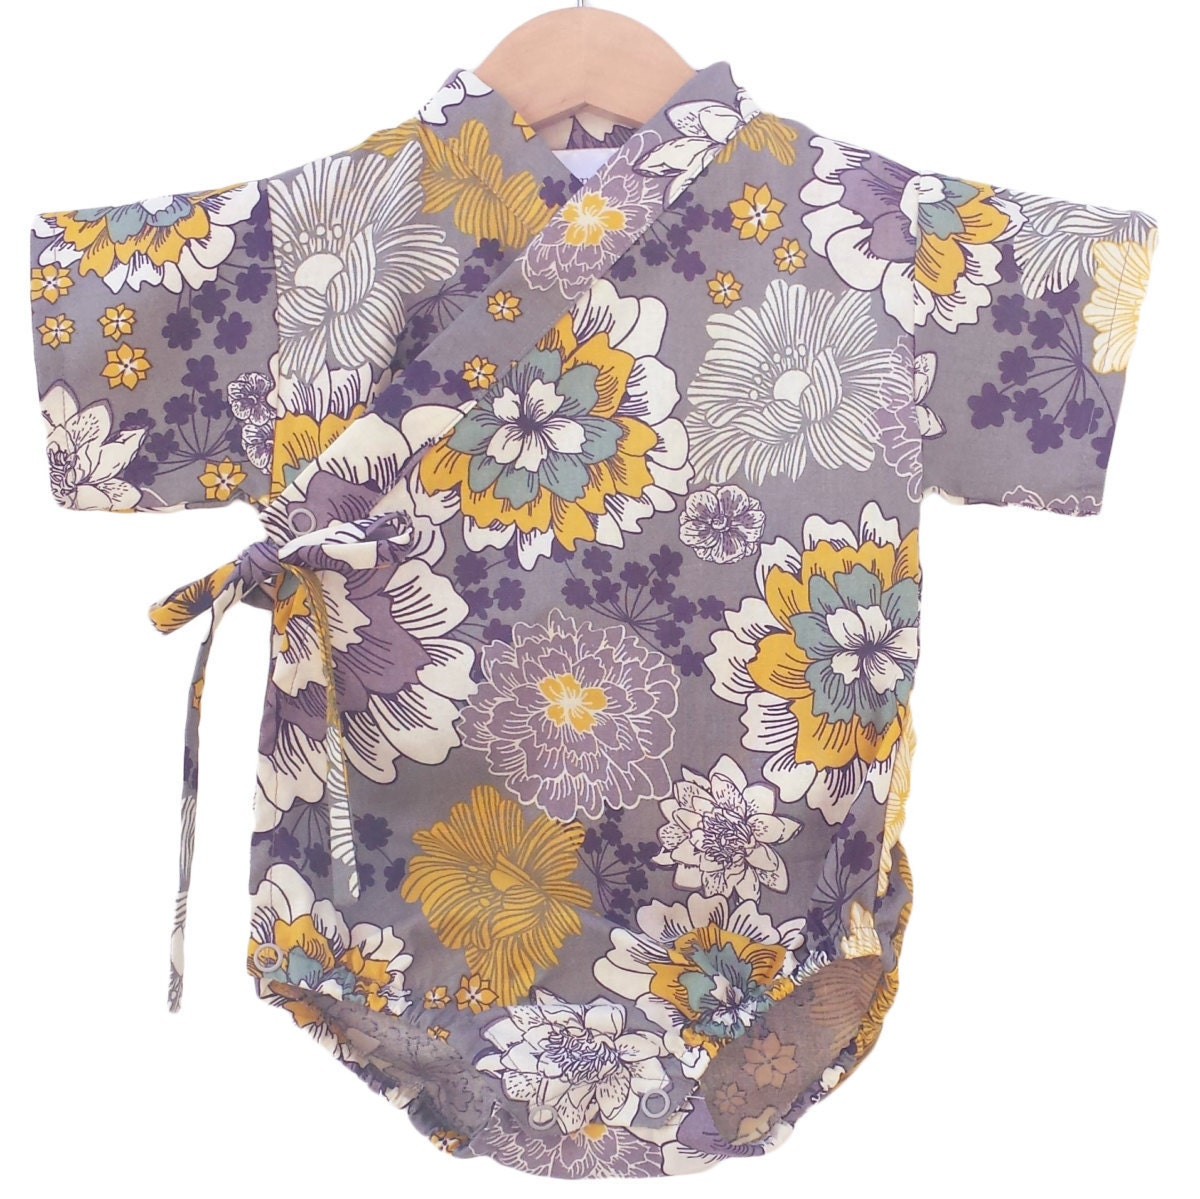 Images of Kimono Onesie - Best Fashion Trends and Models